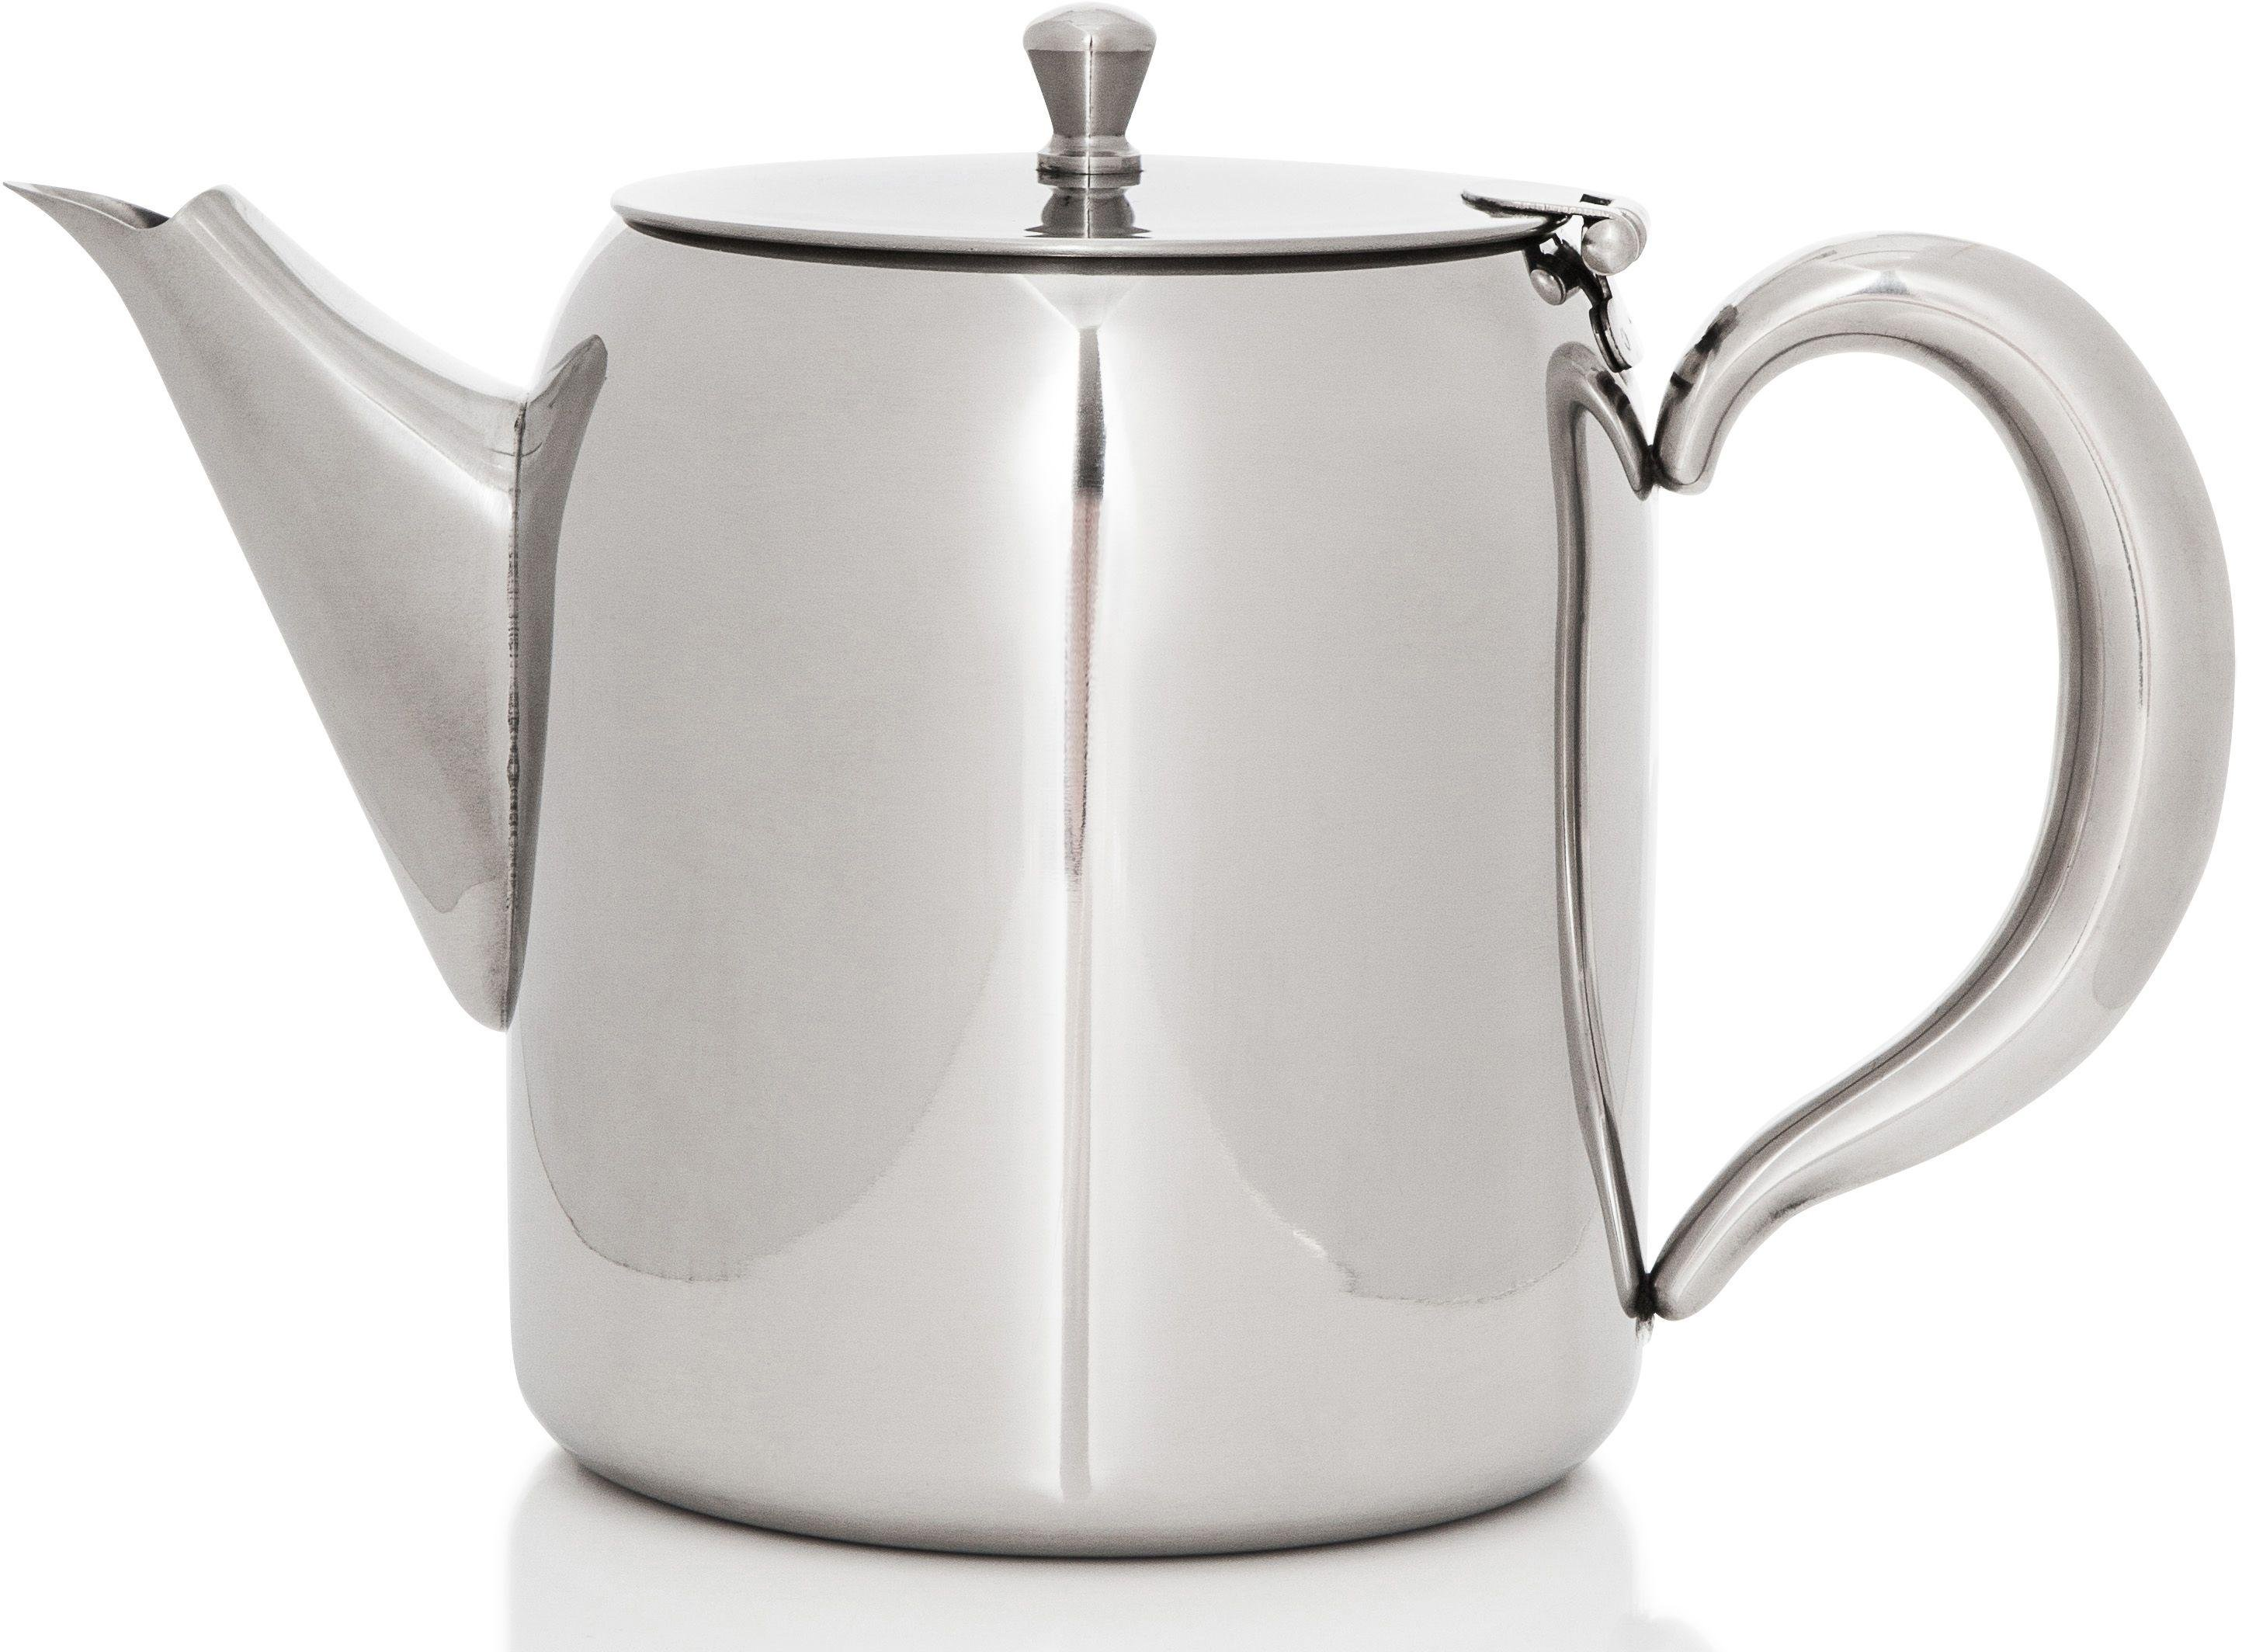 Image of Sabichi Classic Teapot - Stainless Steel